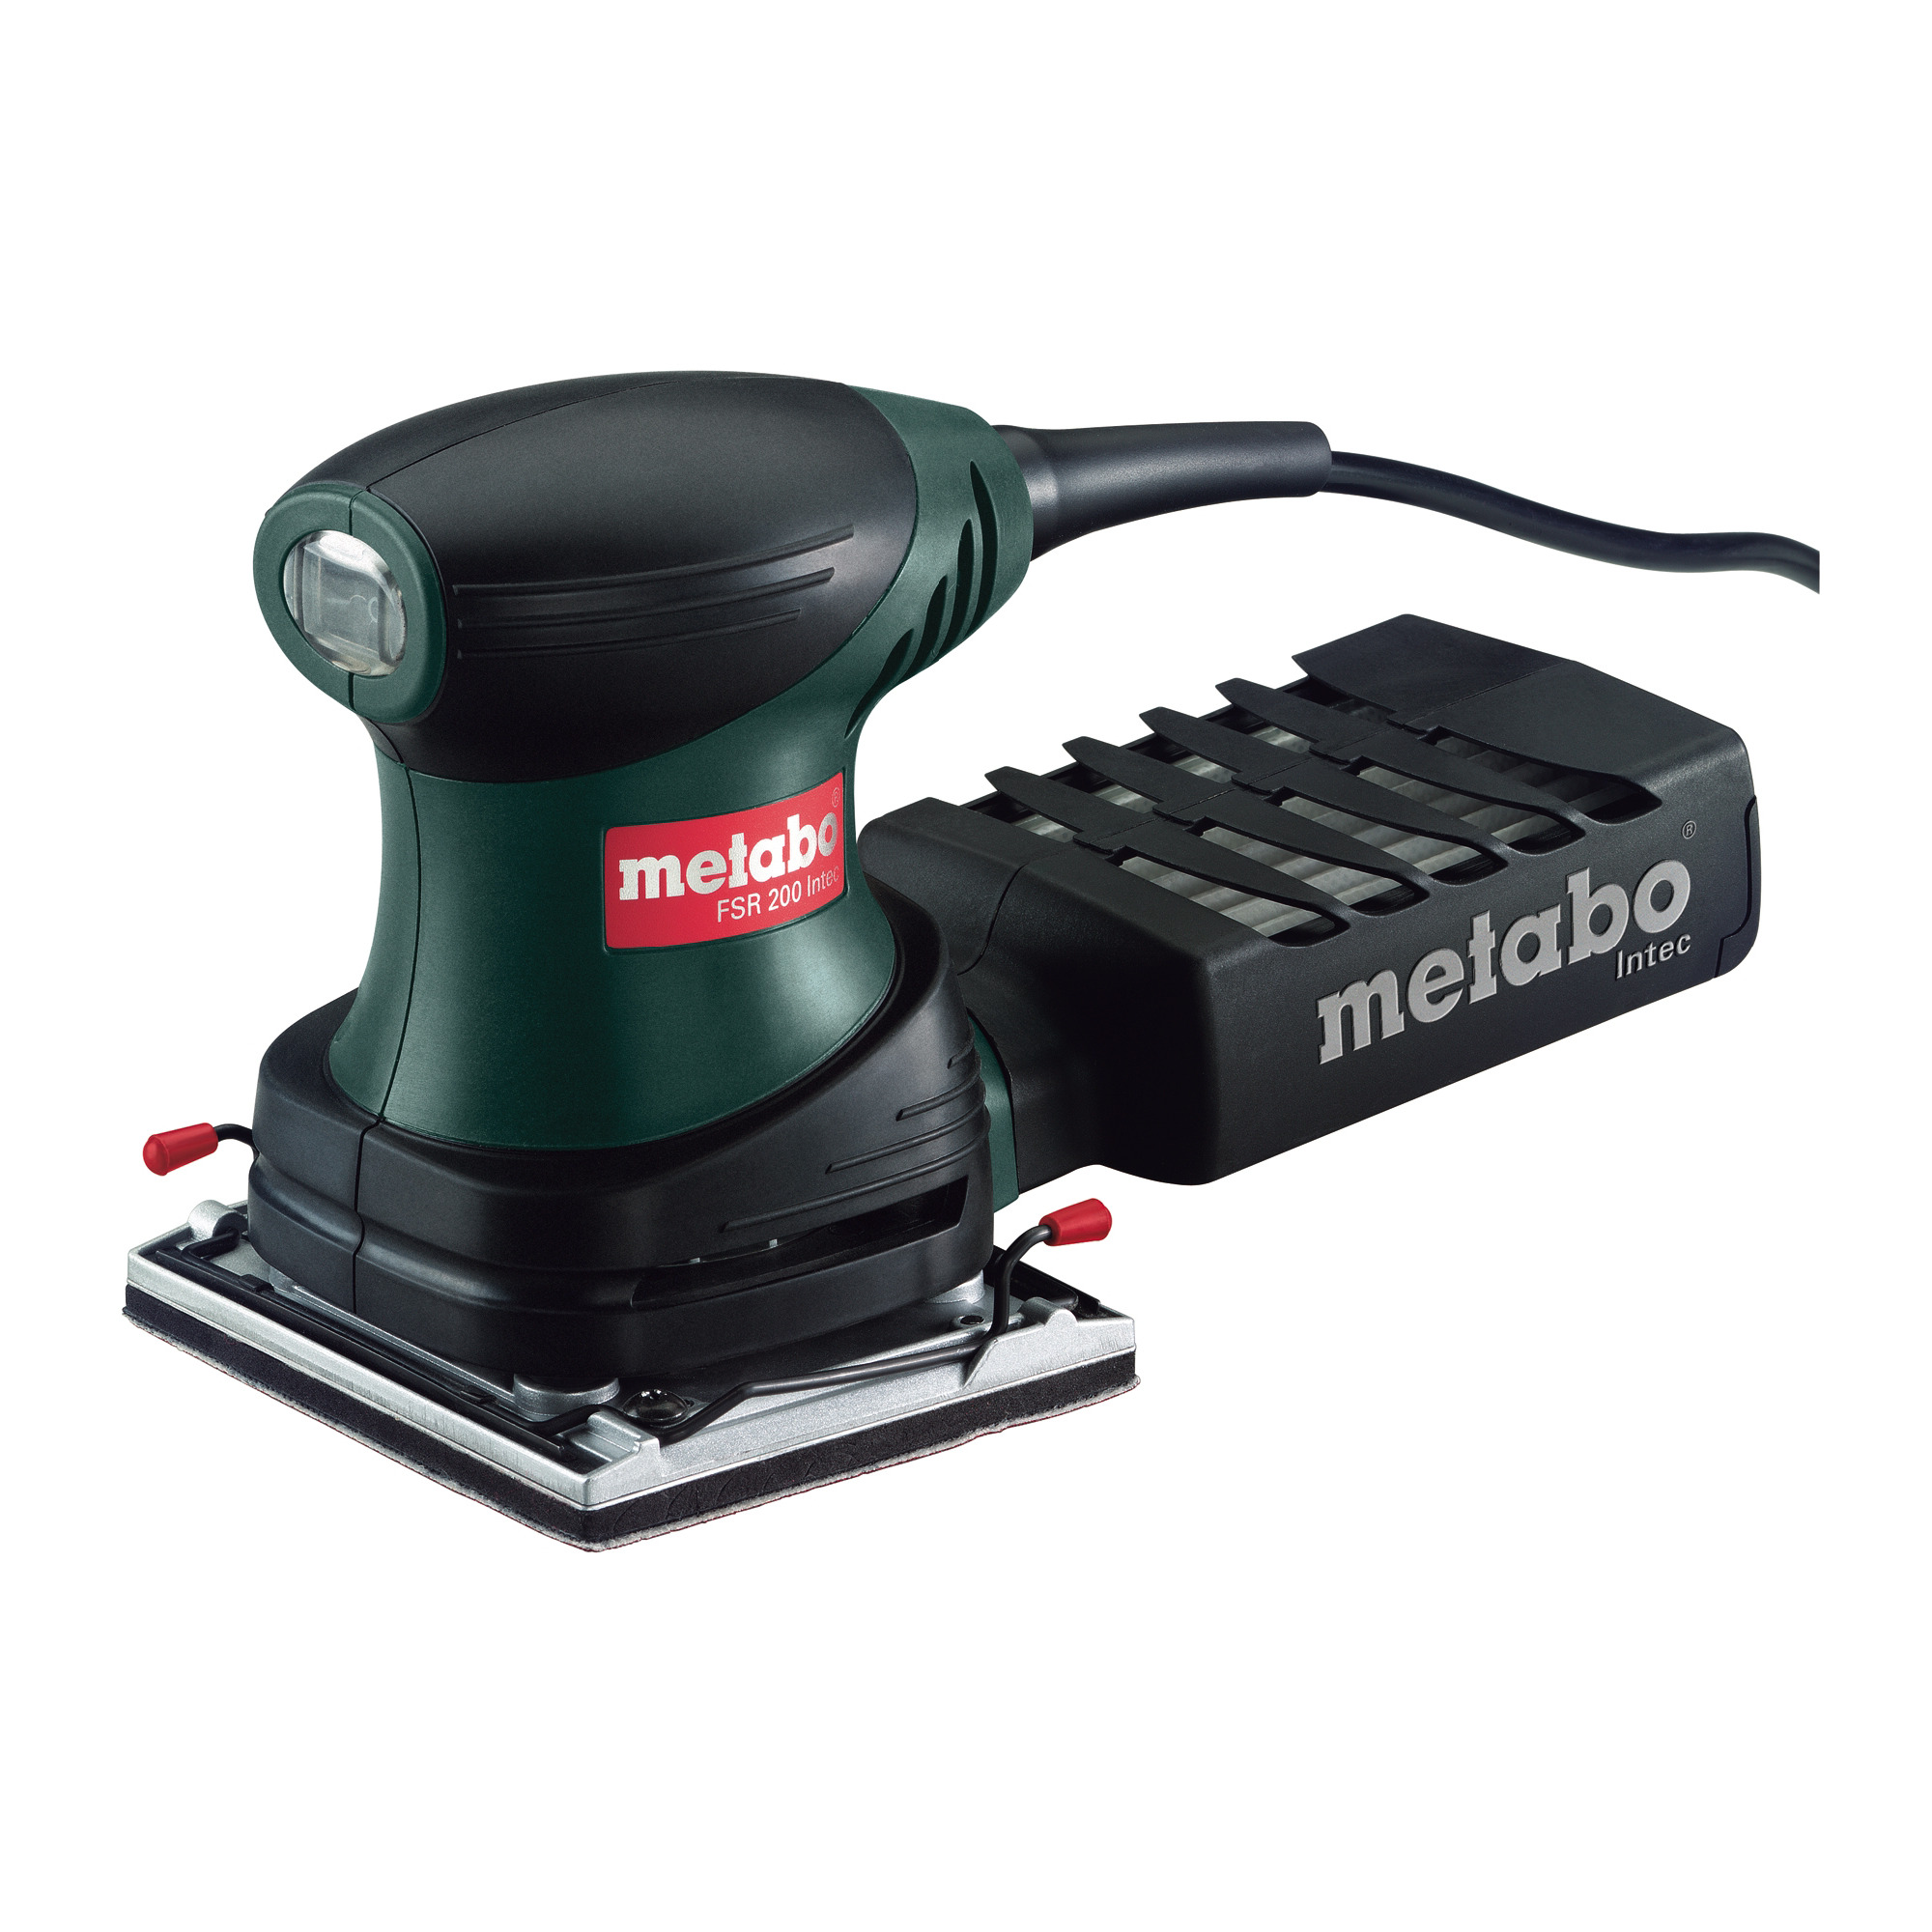 Metabo Fsr 200 Intec Vlakschuurmachine 200 Watt 114X102 Mm